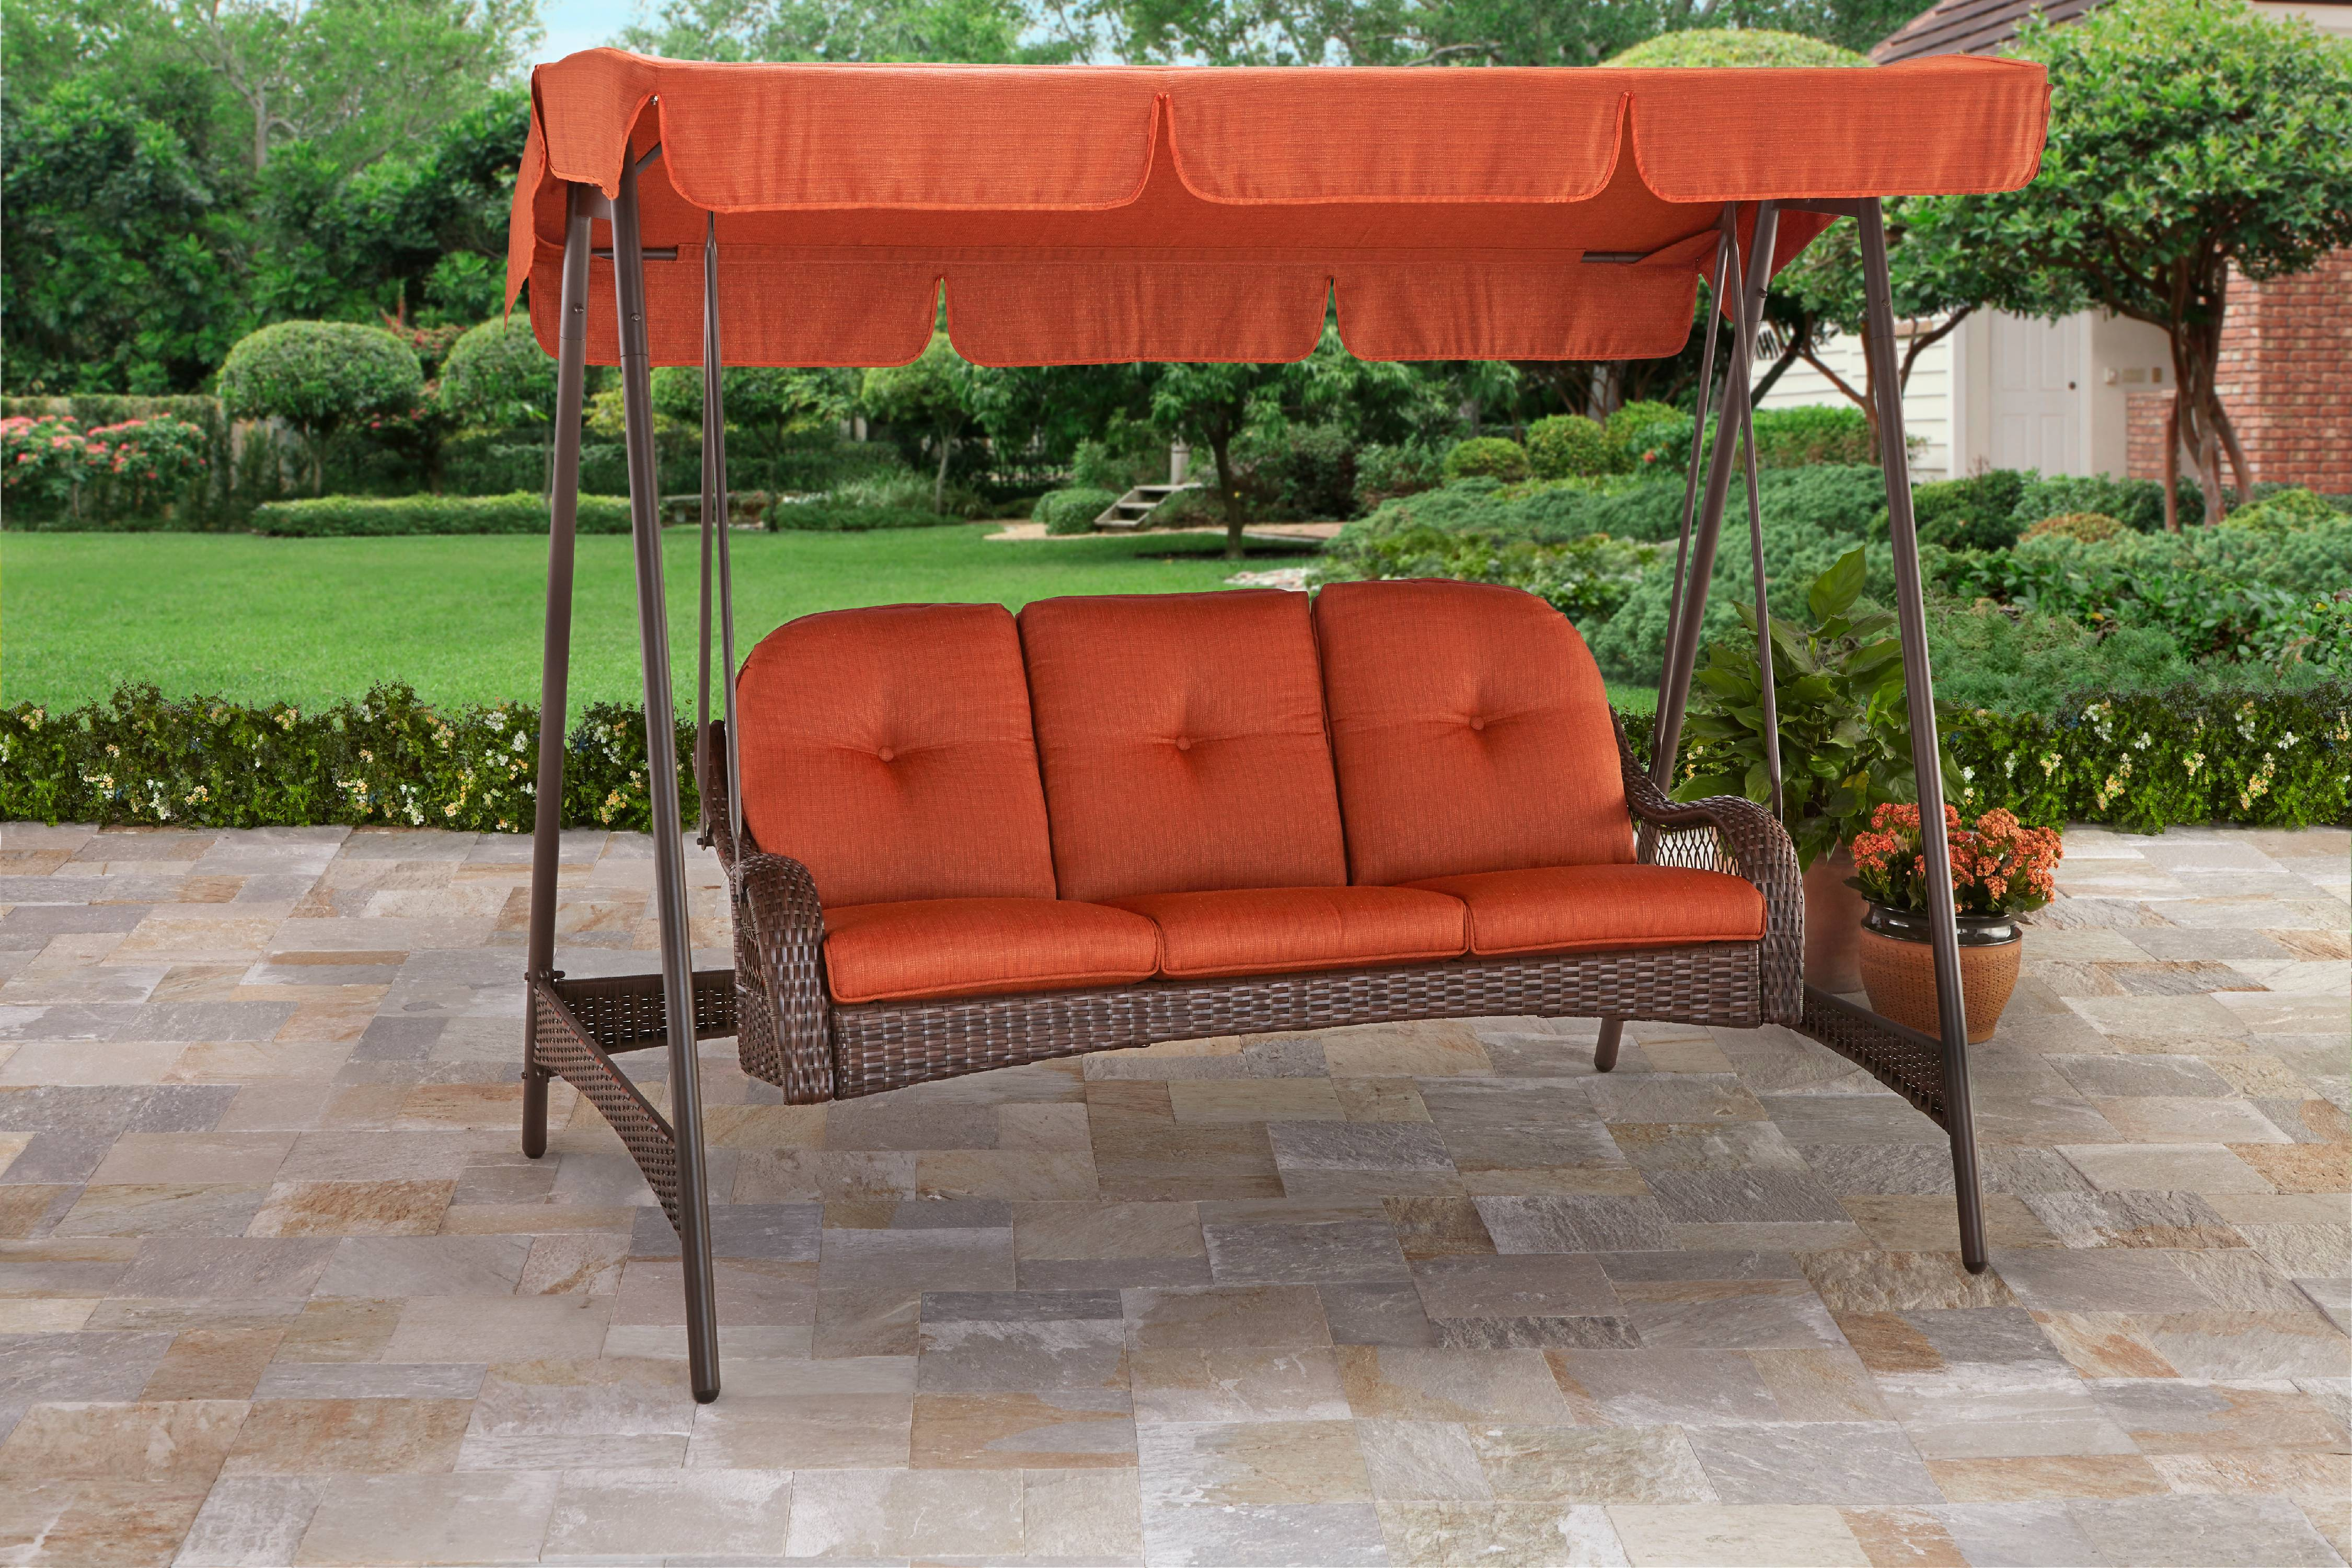 Better Homes and Gardens Azalea Ridge 3-Person Porch Swing with Canopy  sc 1 st  Walmart & Better Homes and Gardens Azalea Ridge 3-Person Porch Swing with ...